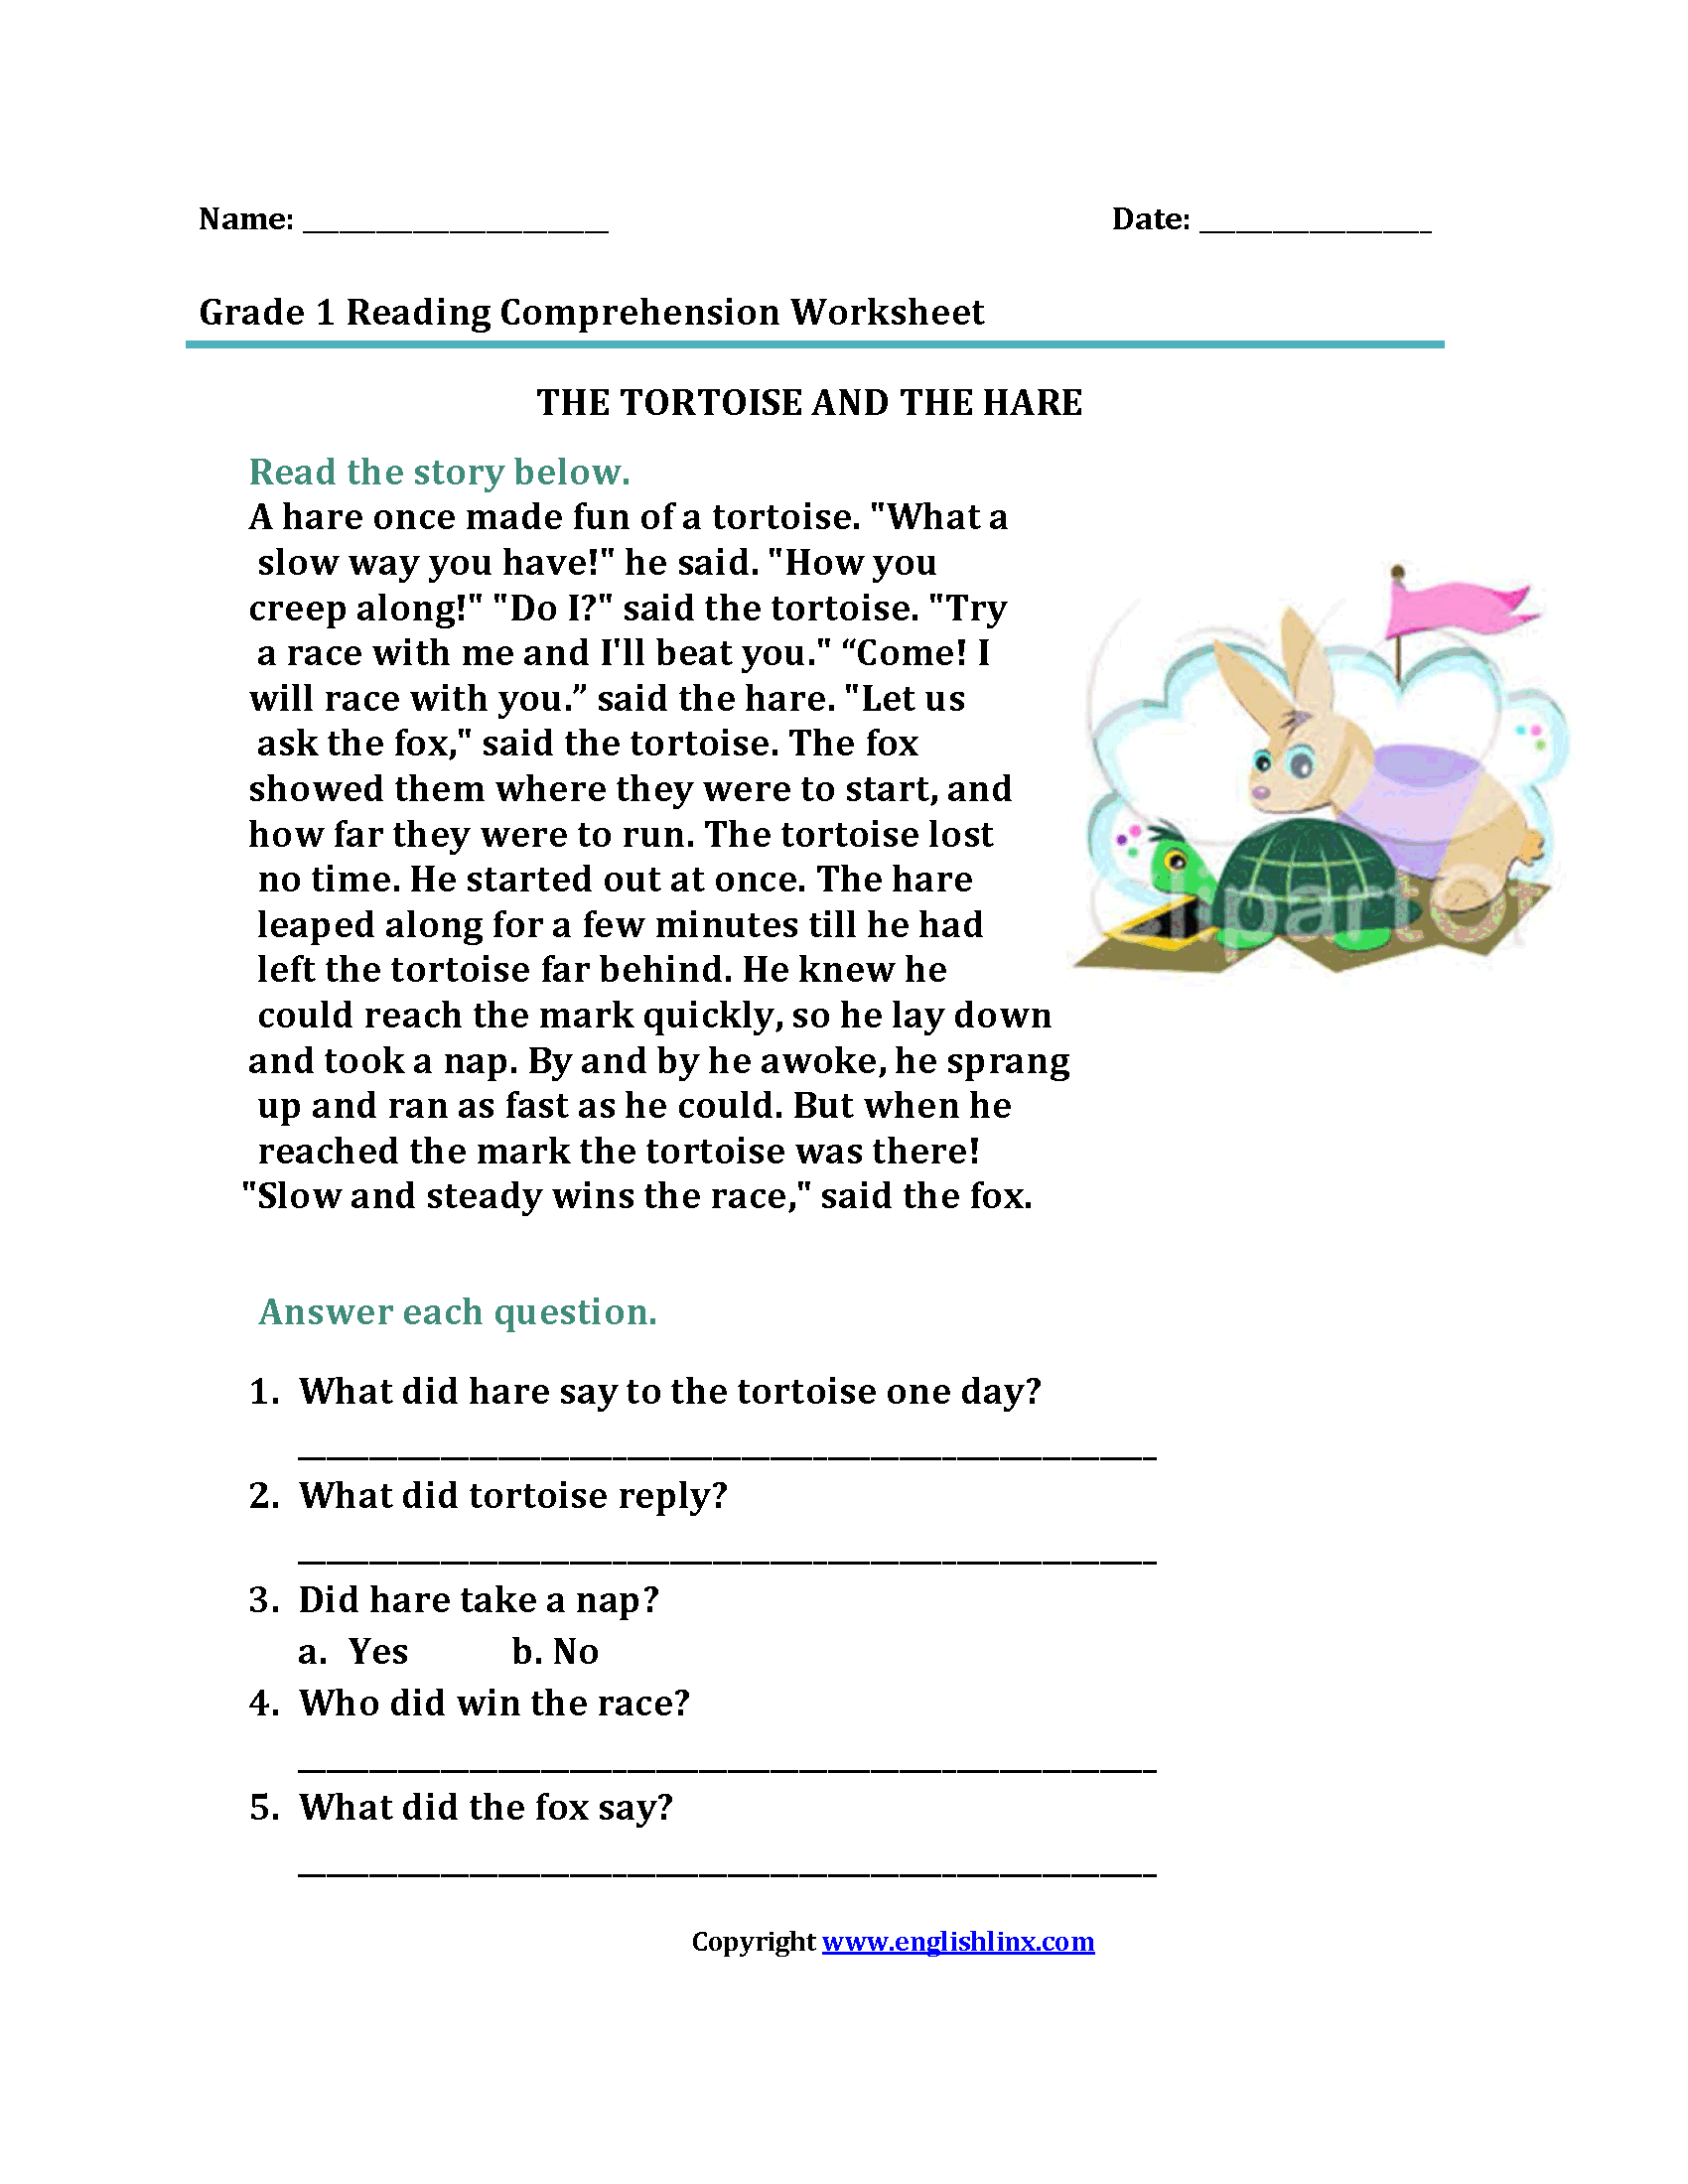 Turtle Worksheet For 2nd Grade